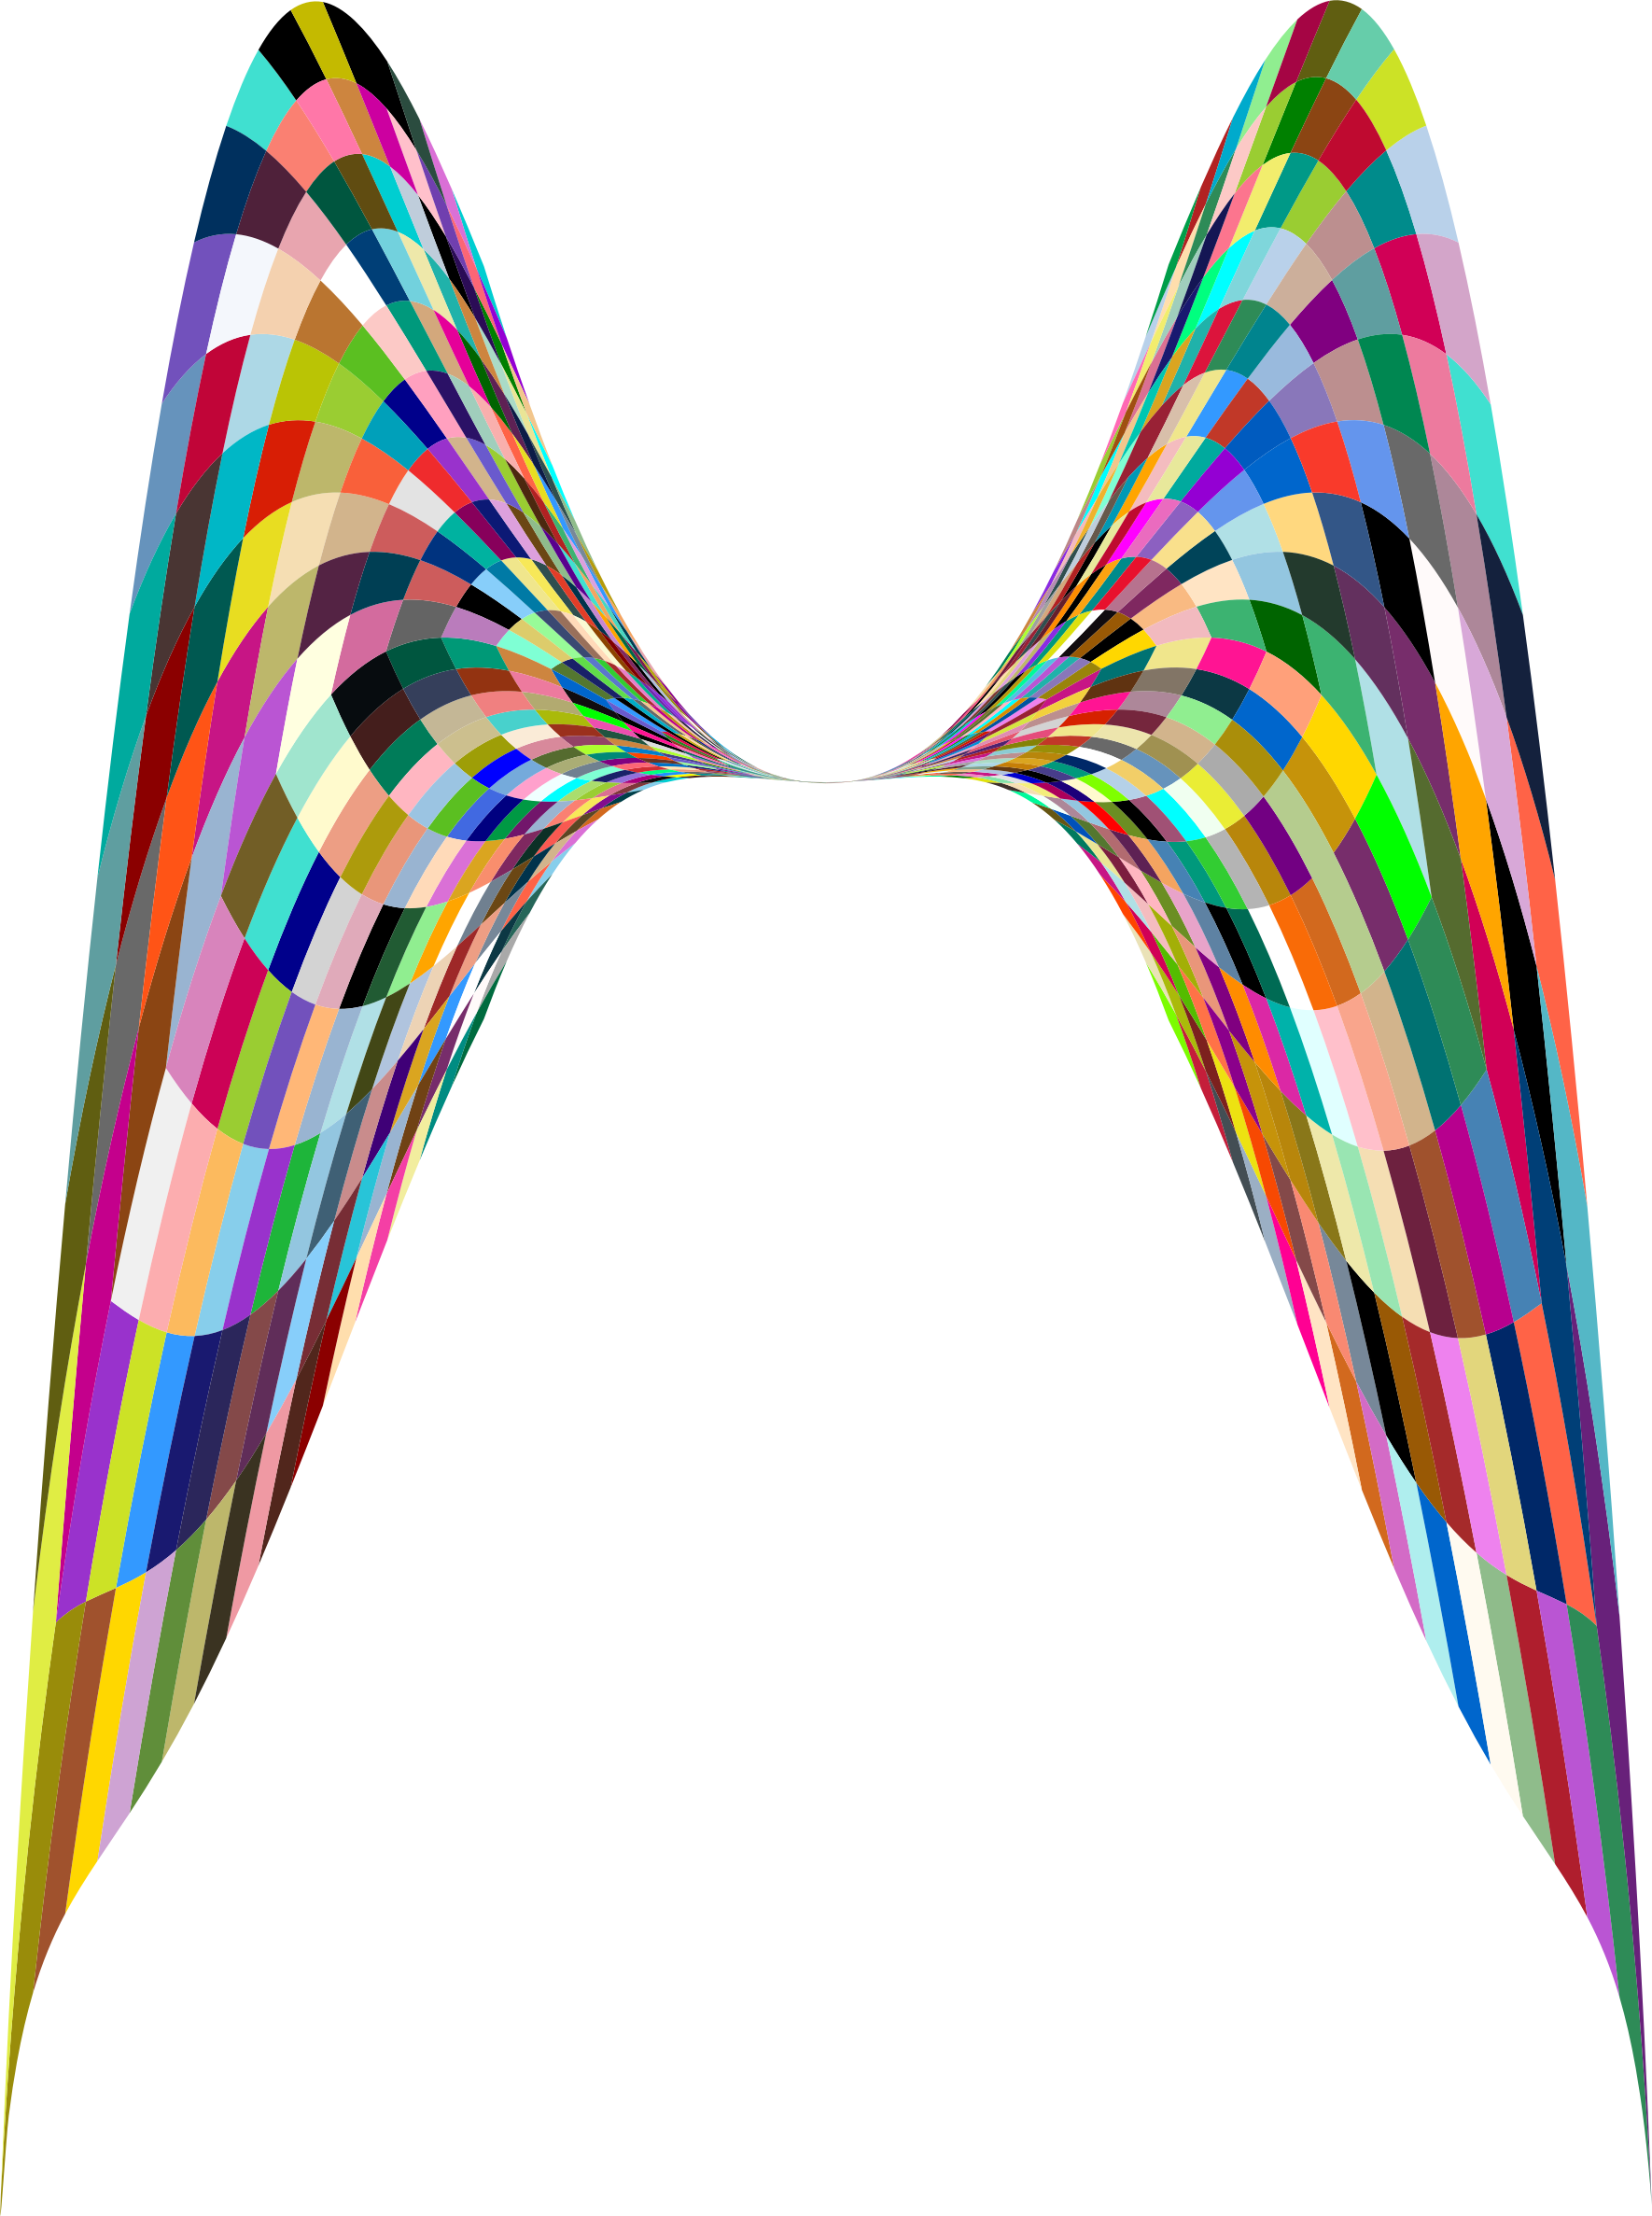 Geometric angel wings big. Wing clipart colorful